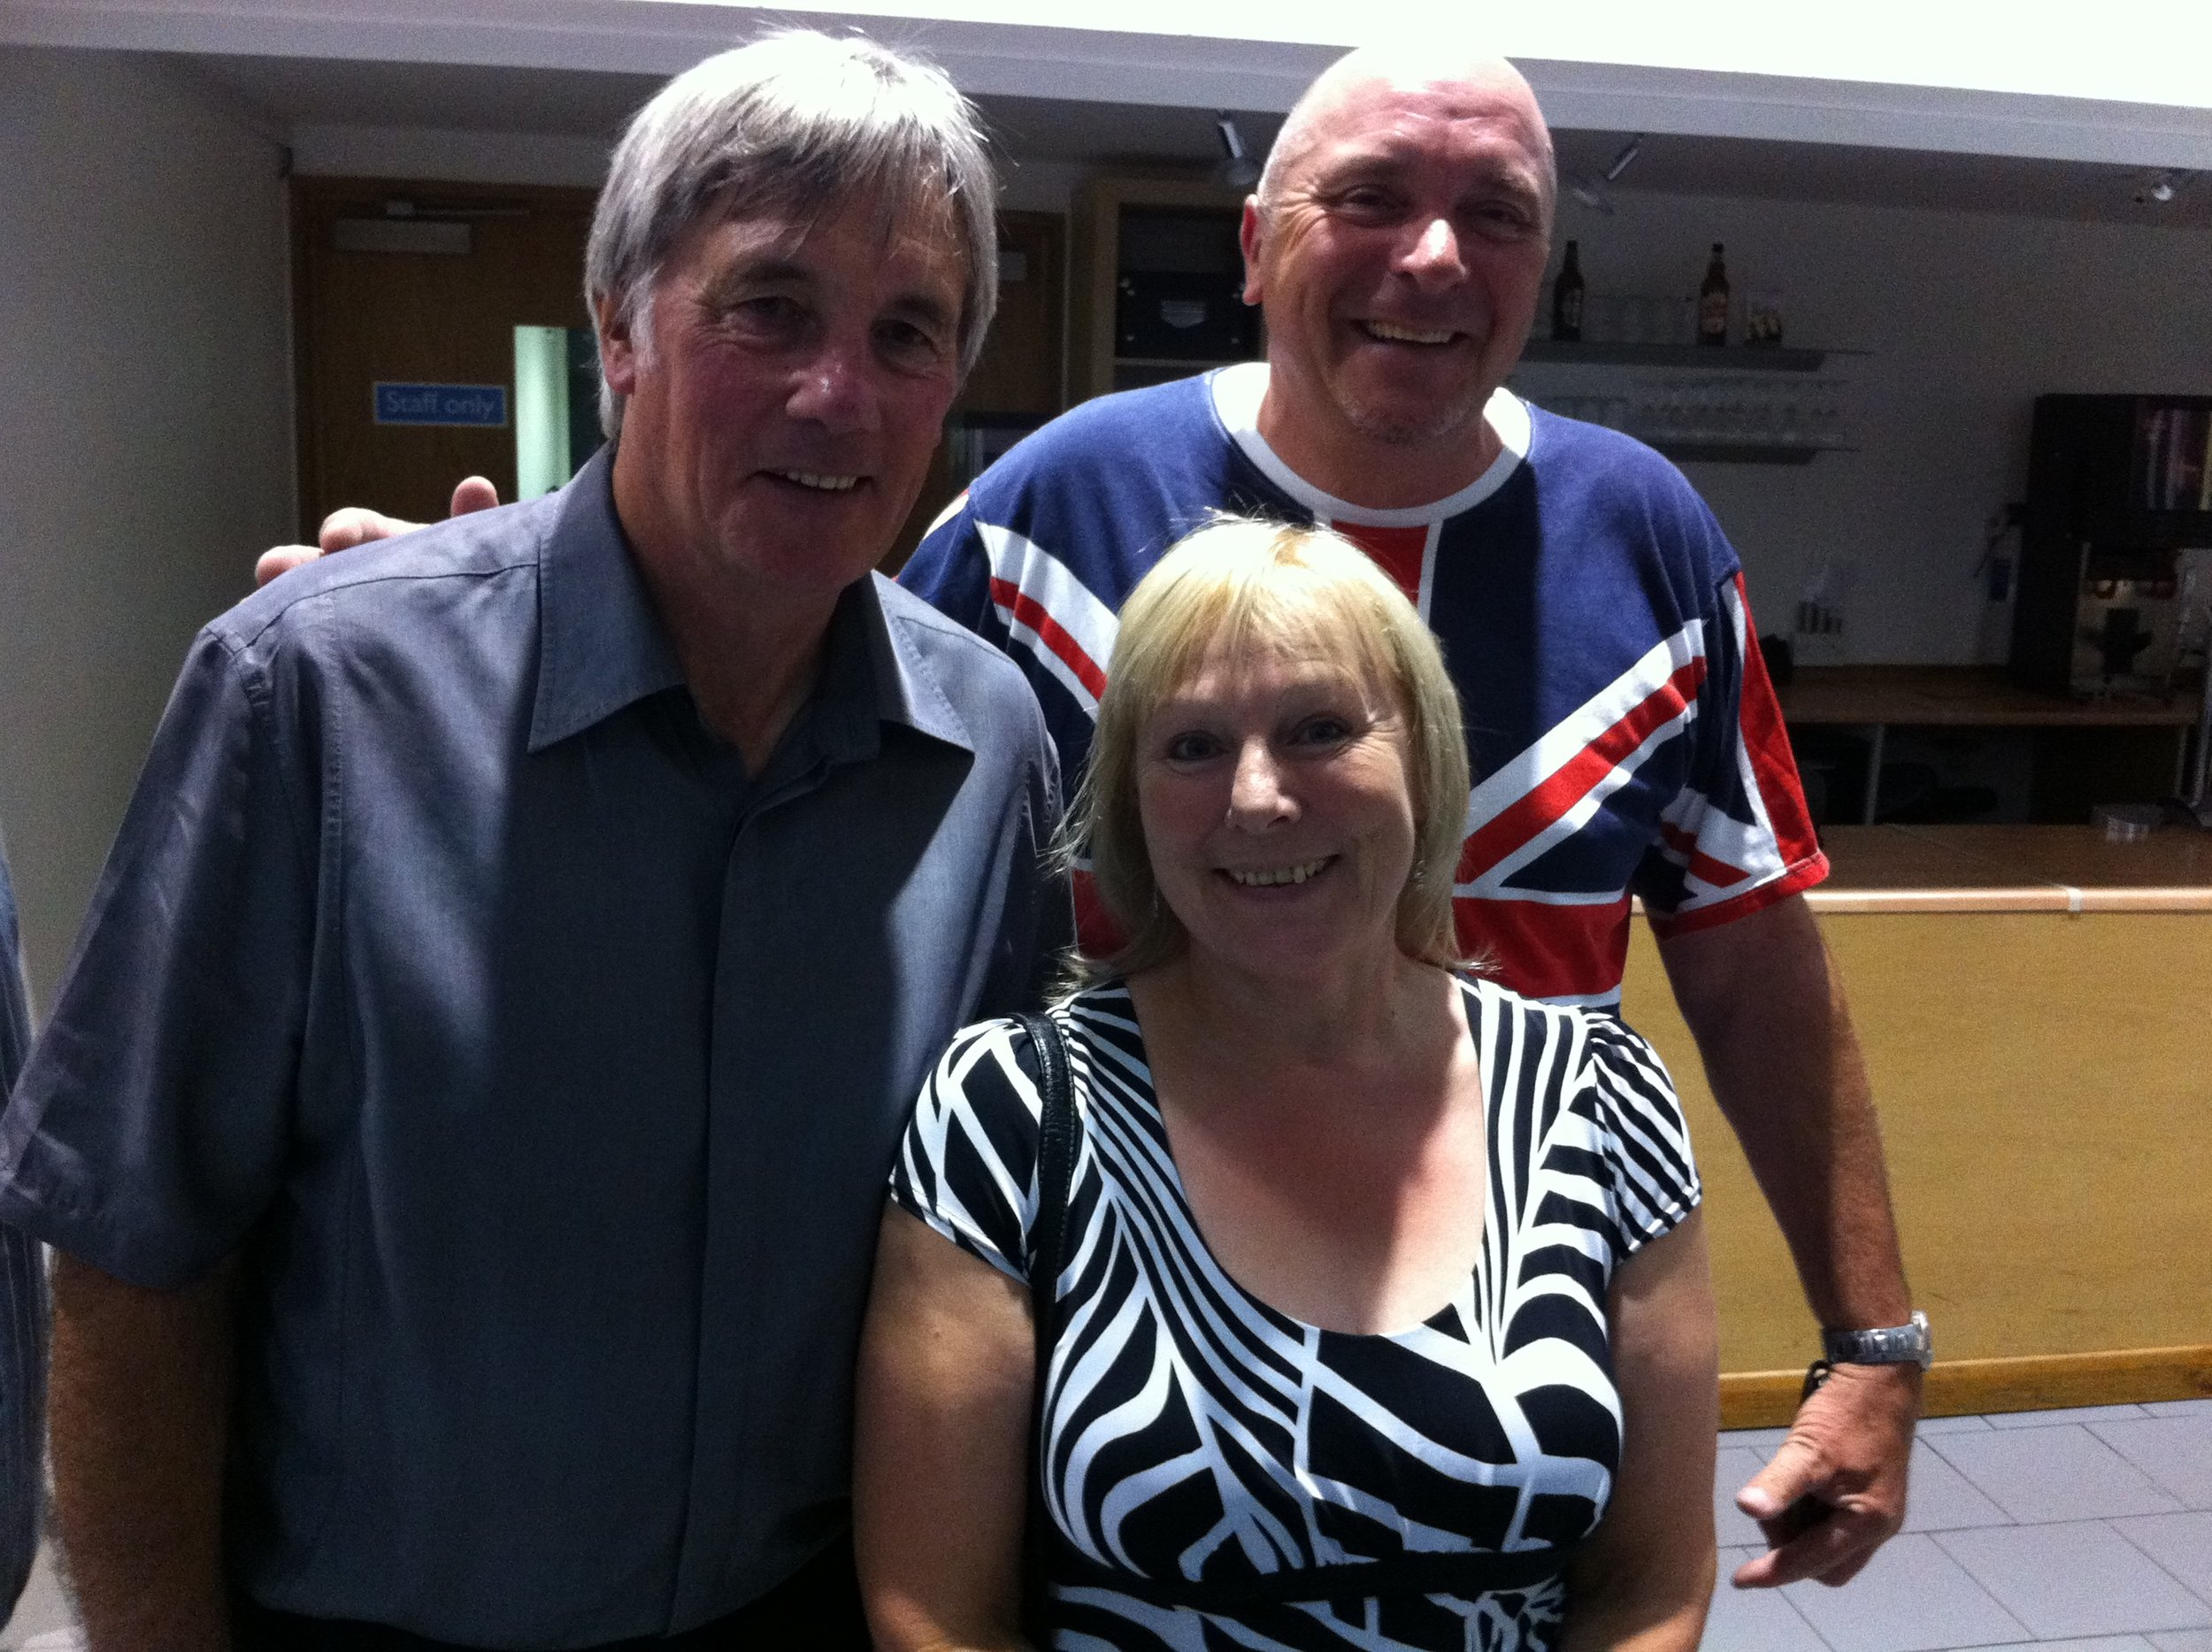 nick--karen-with-mick-avory-the-original-drummer-from-the-kinks_6021310335_o.jpg